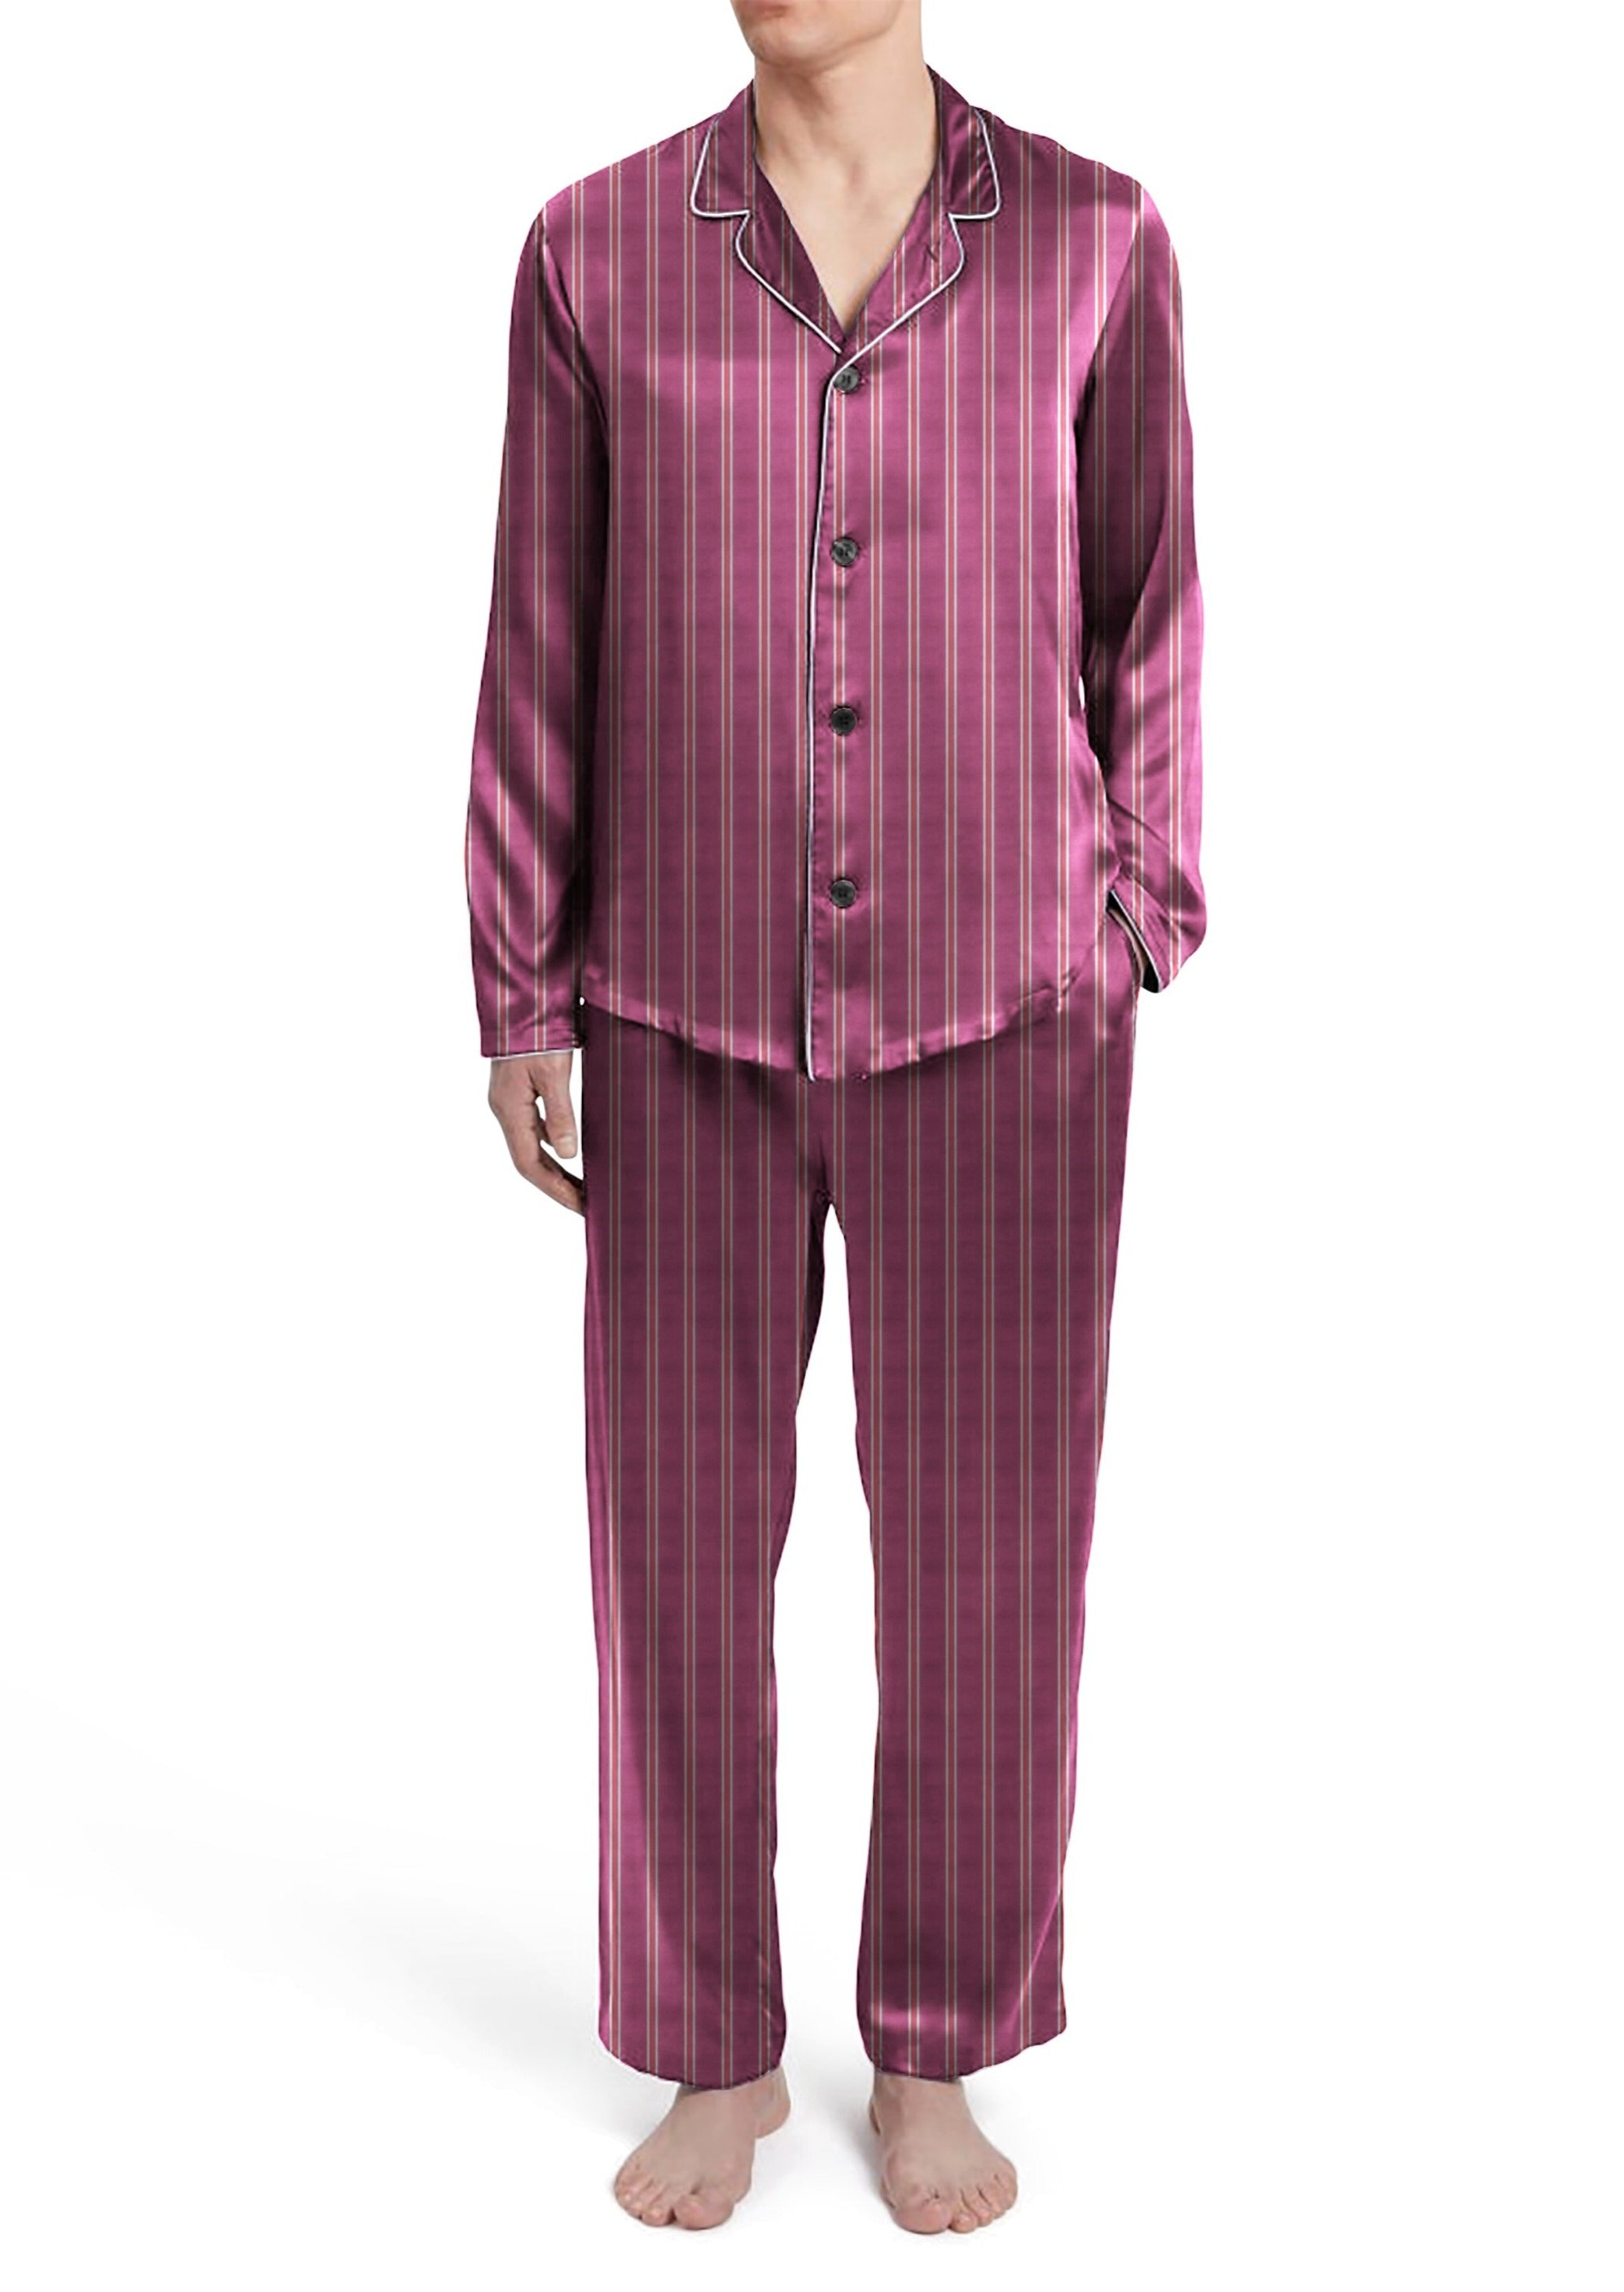 Mens Striped Silky Satin Pajama Set